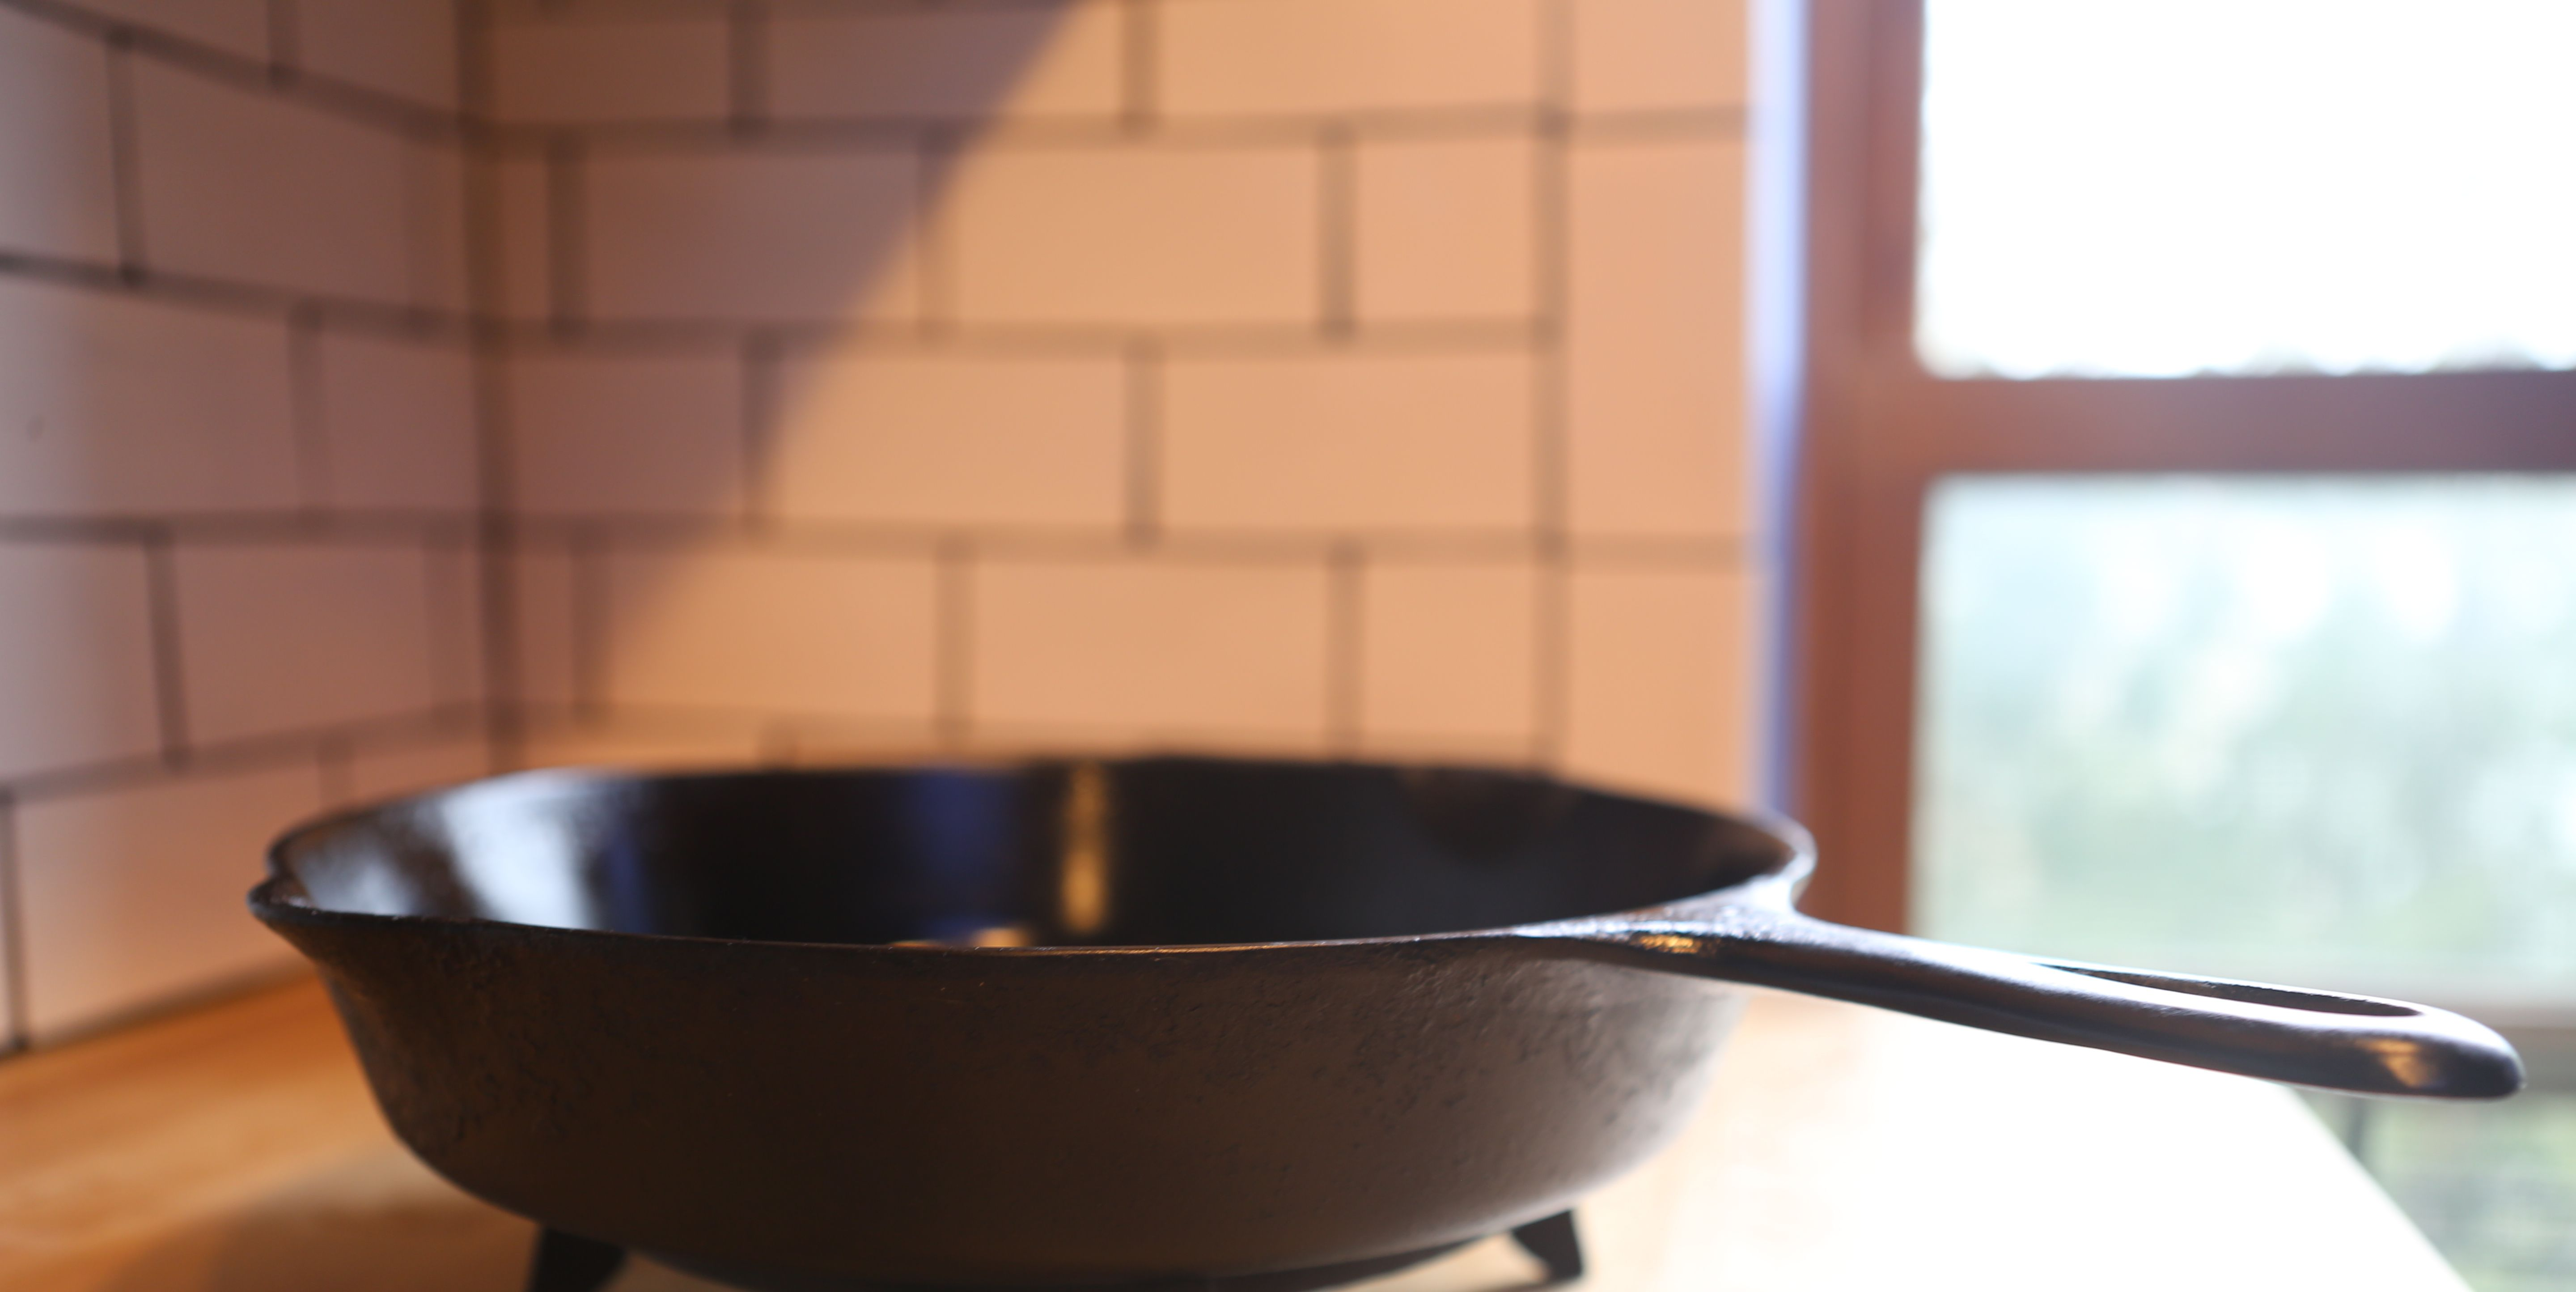 Keeping Happy at Home – Lynn Nottage Cast-Iron Skillet